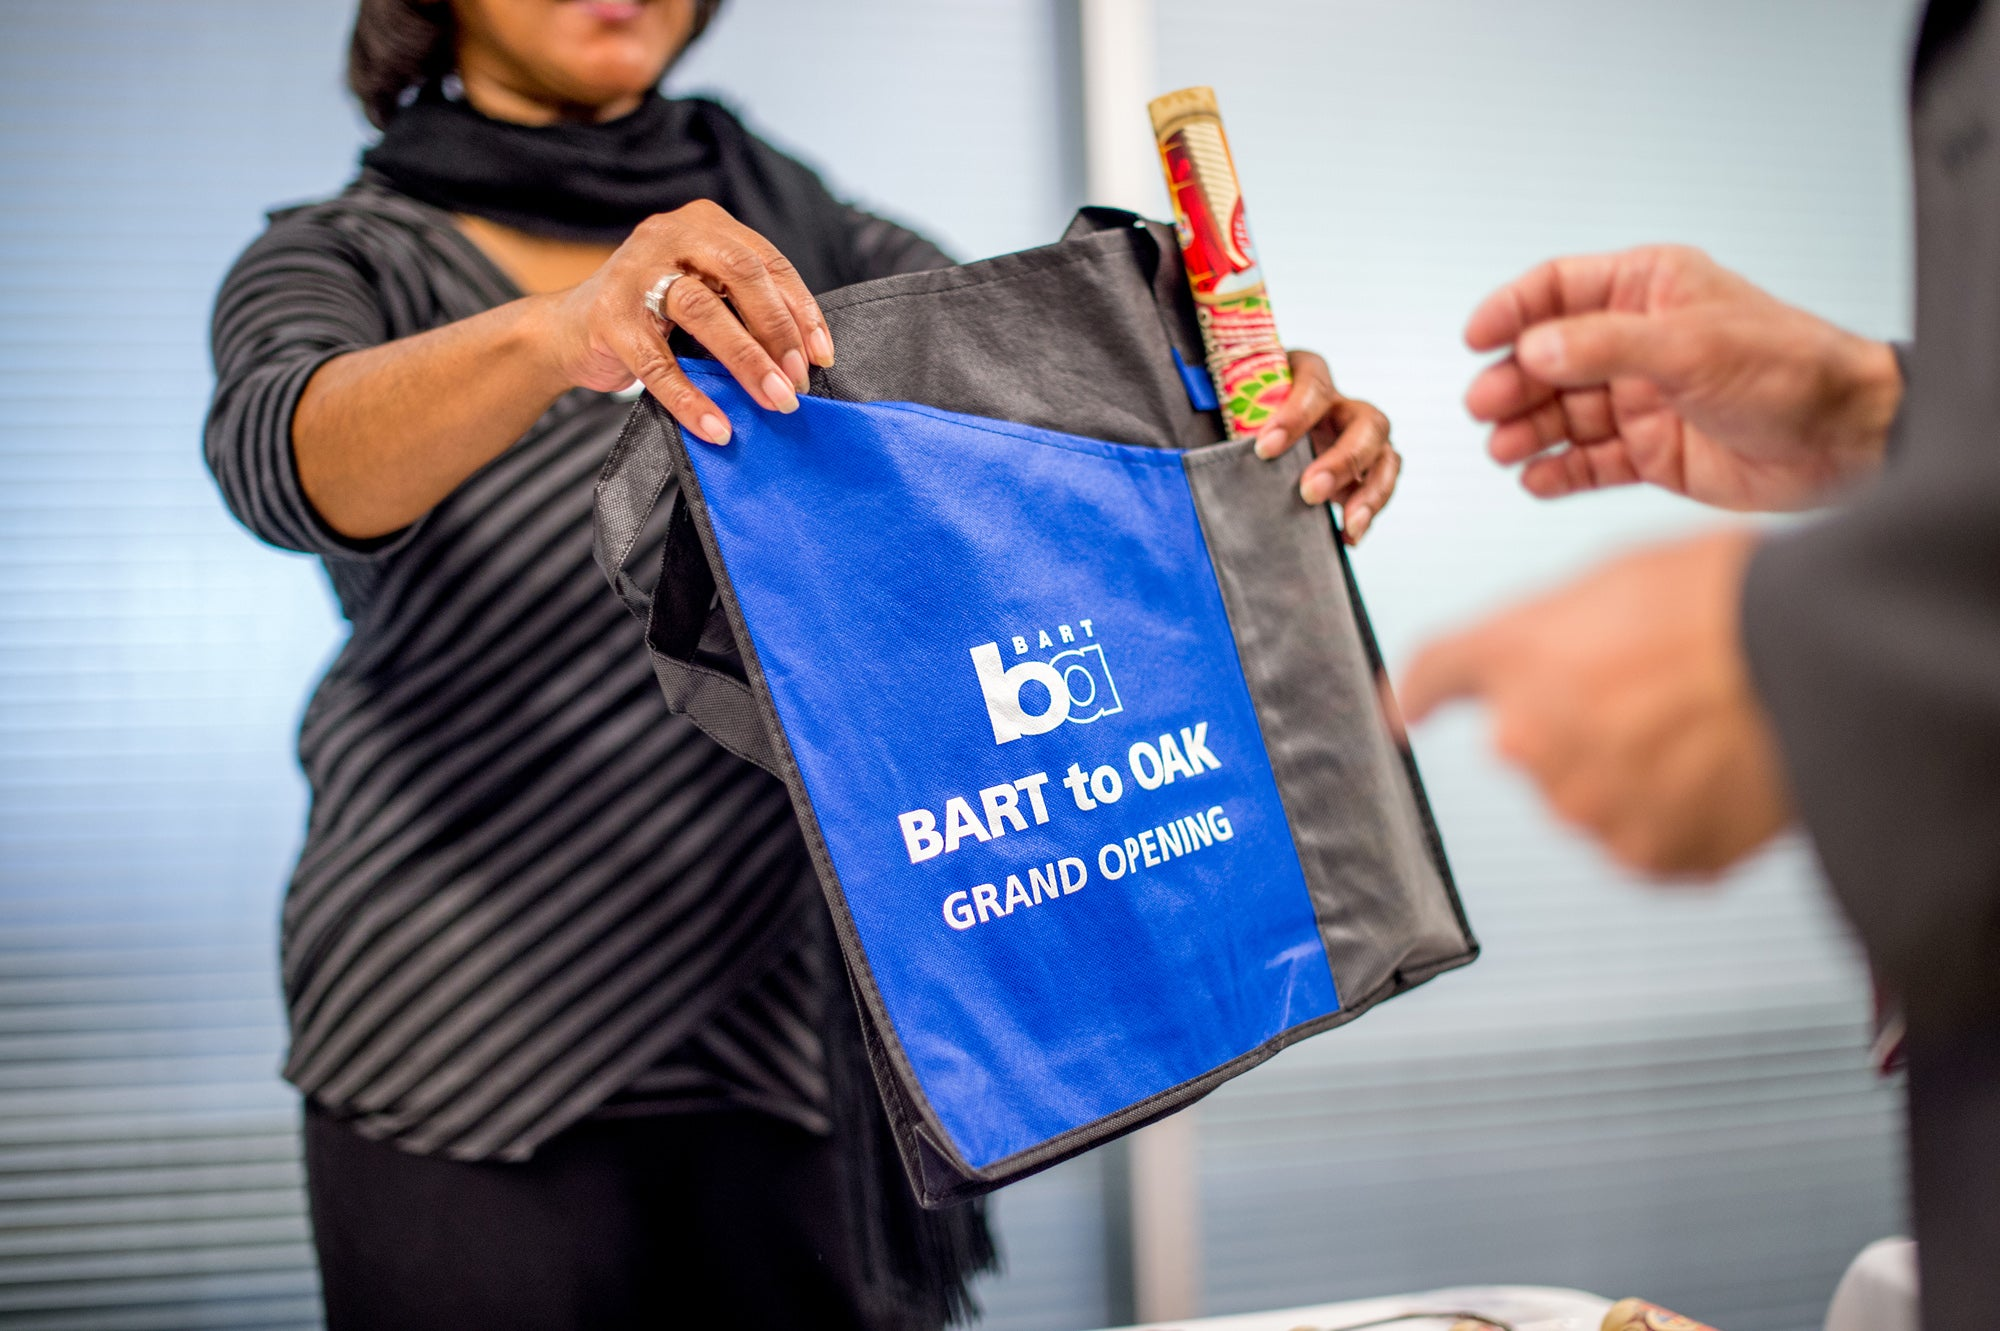 BART to OAK System Goes Live